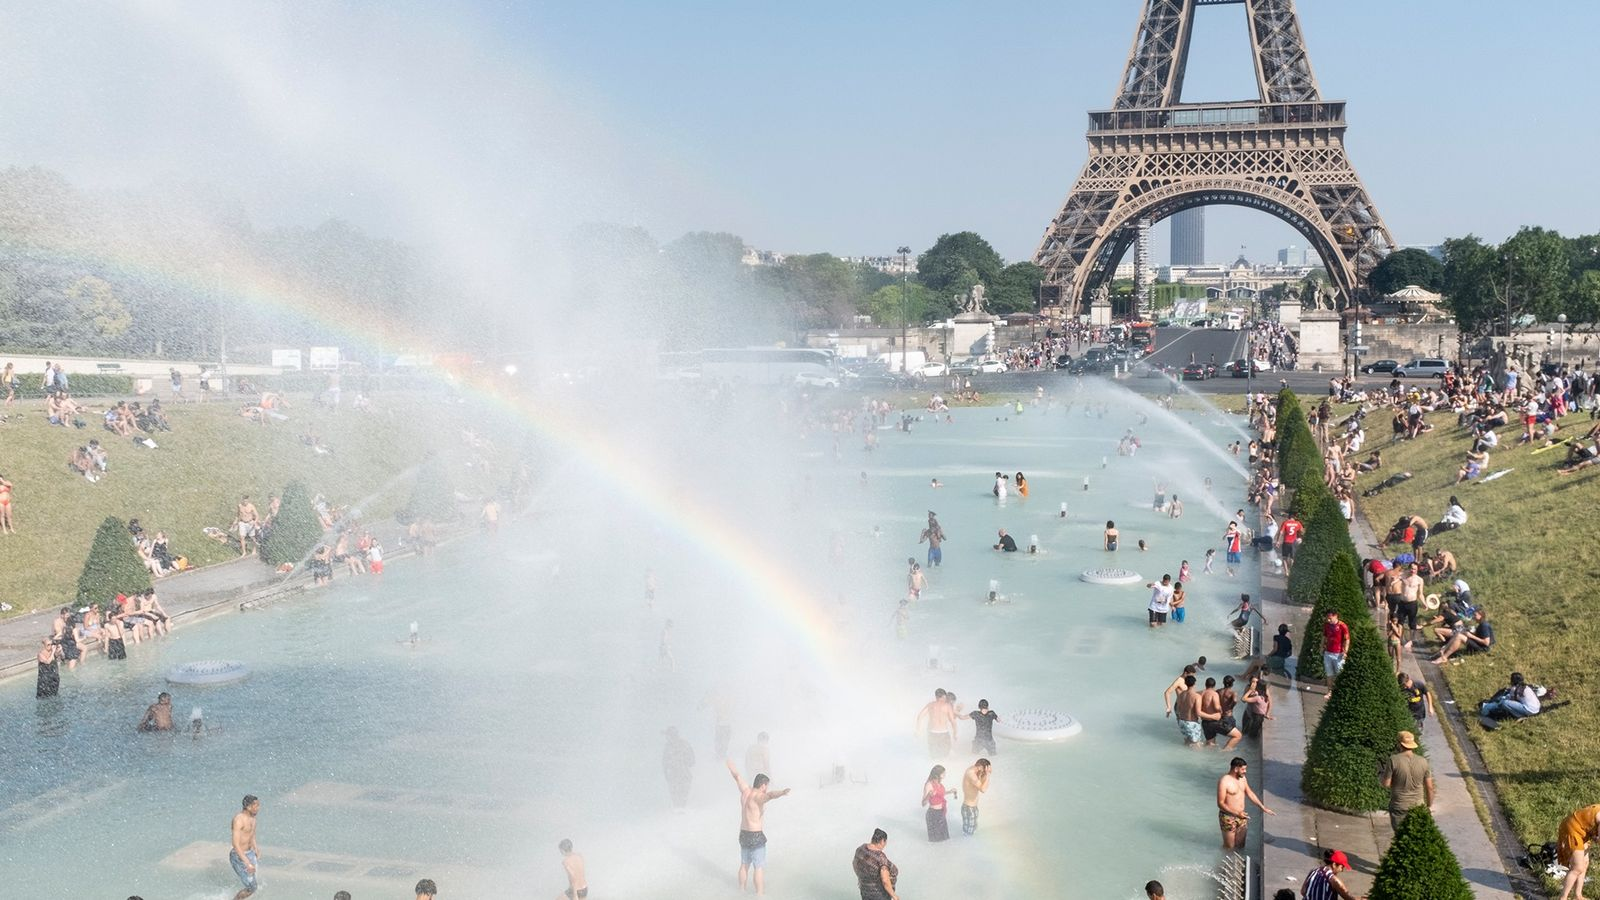 France has experienced record temperatures in recent weeks, with some areas reporting 45°C.